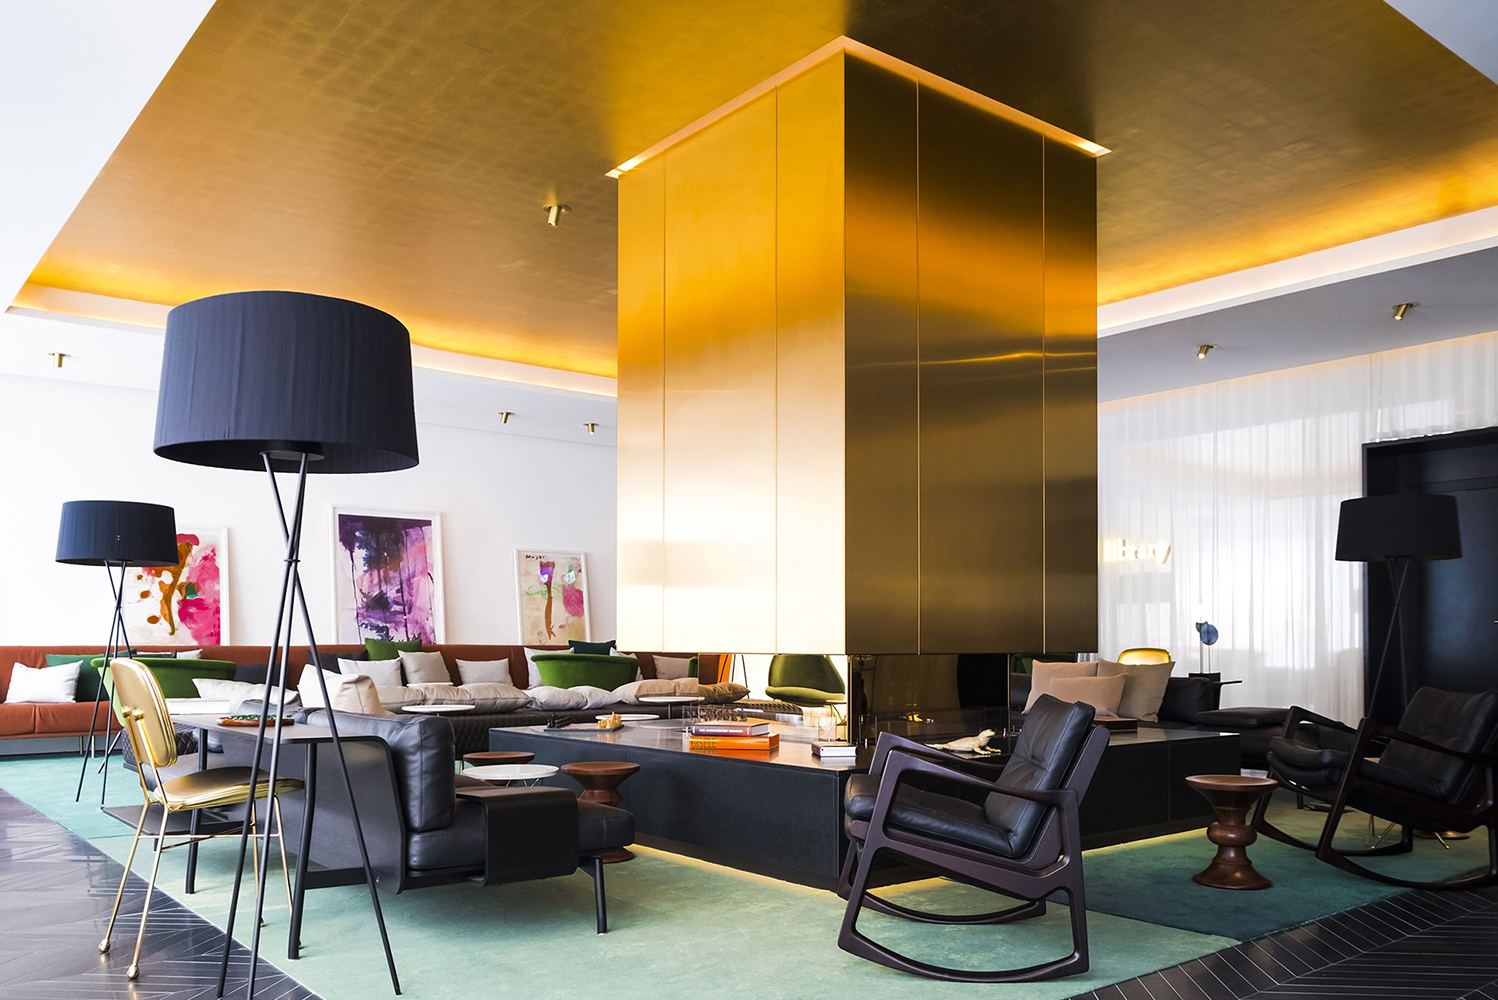 Located in the city's Westend, the hotel was created by the Gekko Group and Amsterdam design company, concrete.